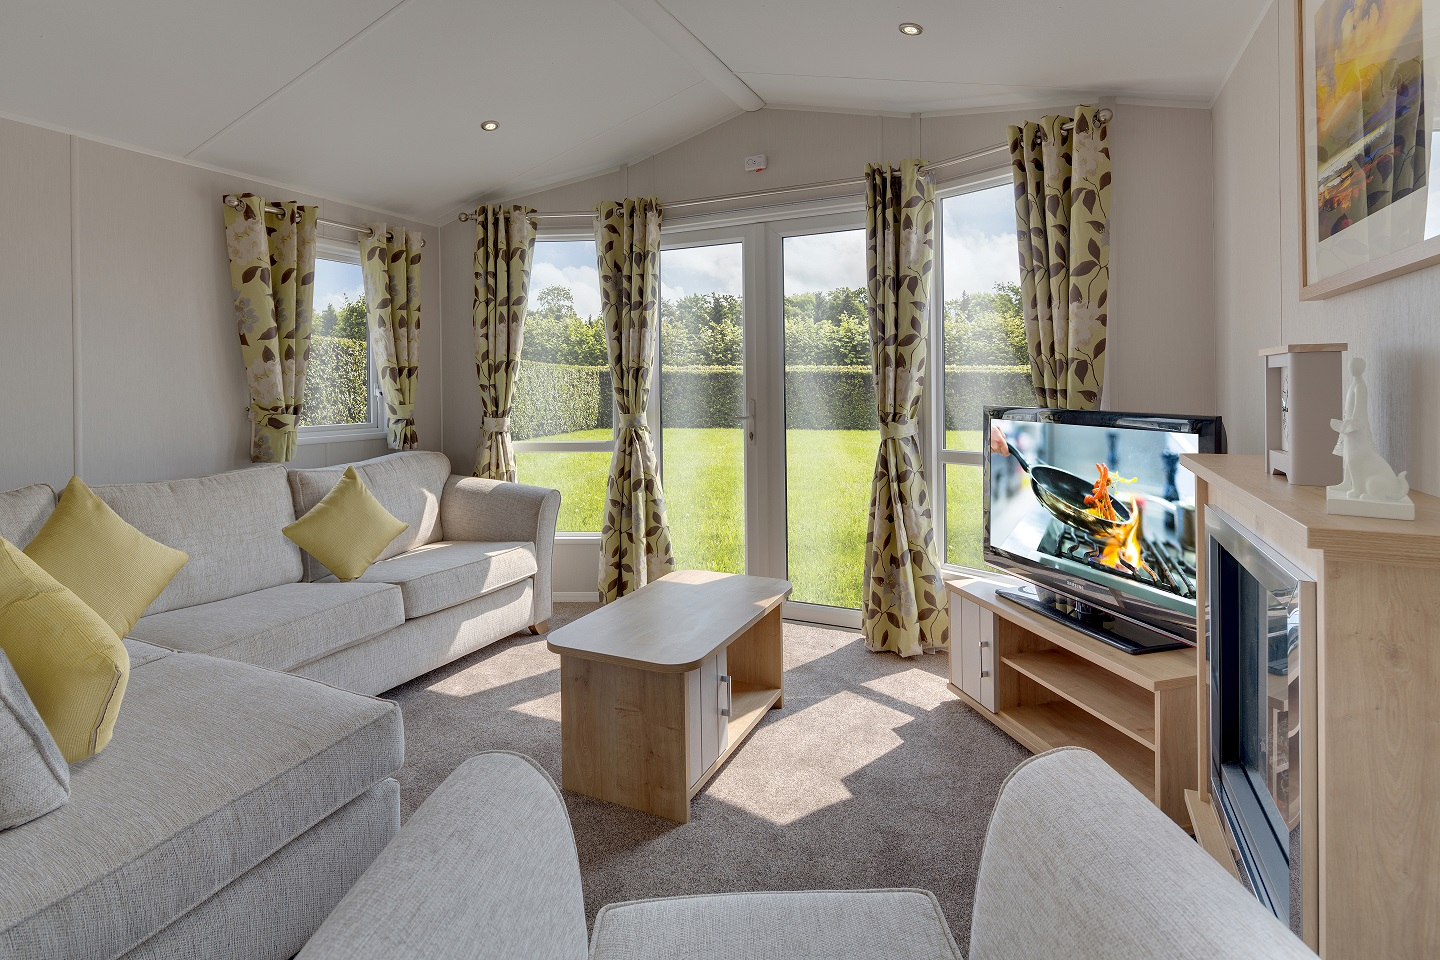 Willerby Winchester: Static Caravans and Holiday Homes for Sale on Caravan Parks, Nidderdale, North Yorkshire Large Image 1